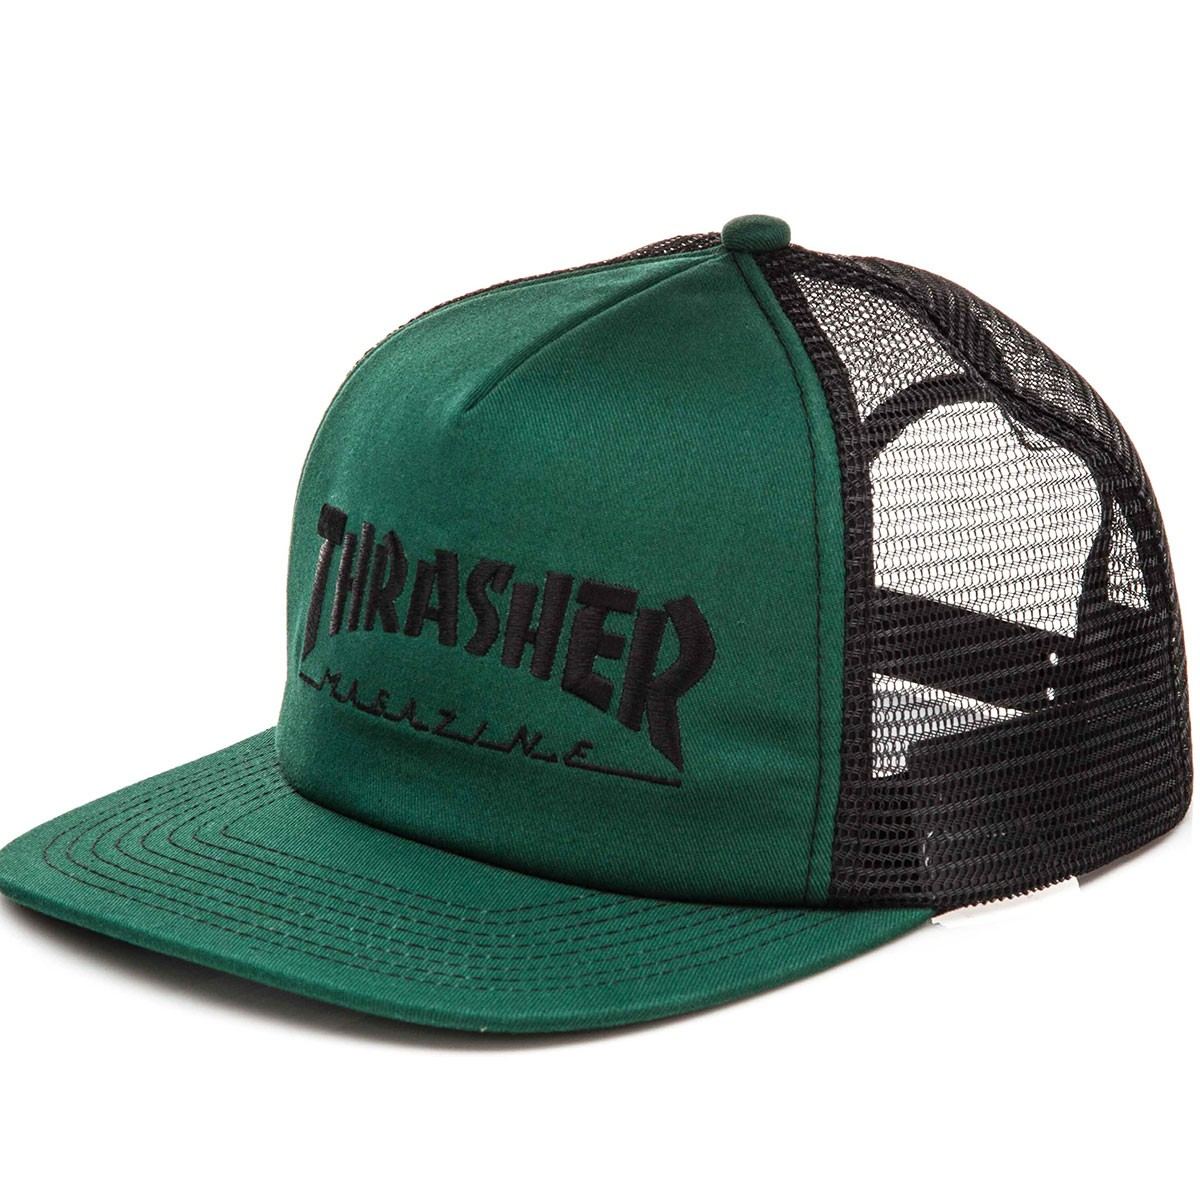 Thrasher logo embroidered mesh hat green black